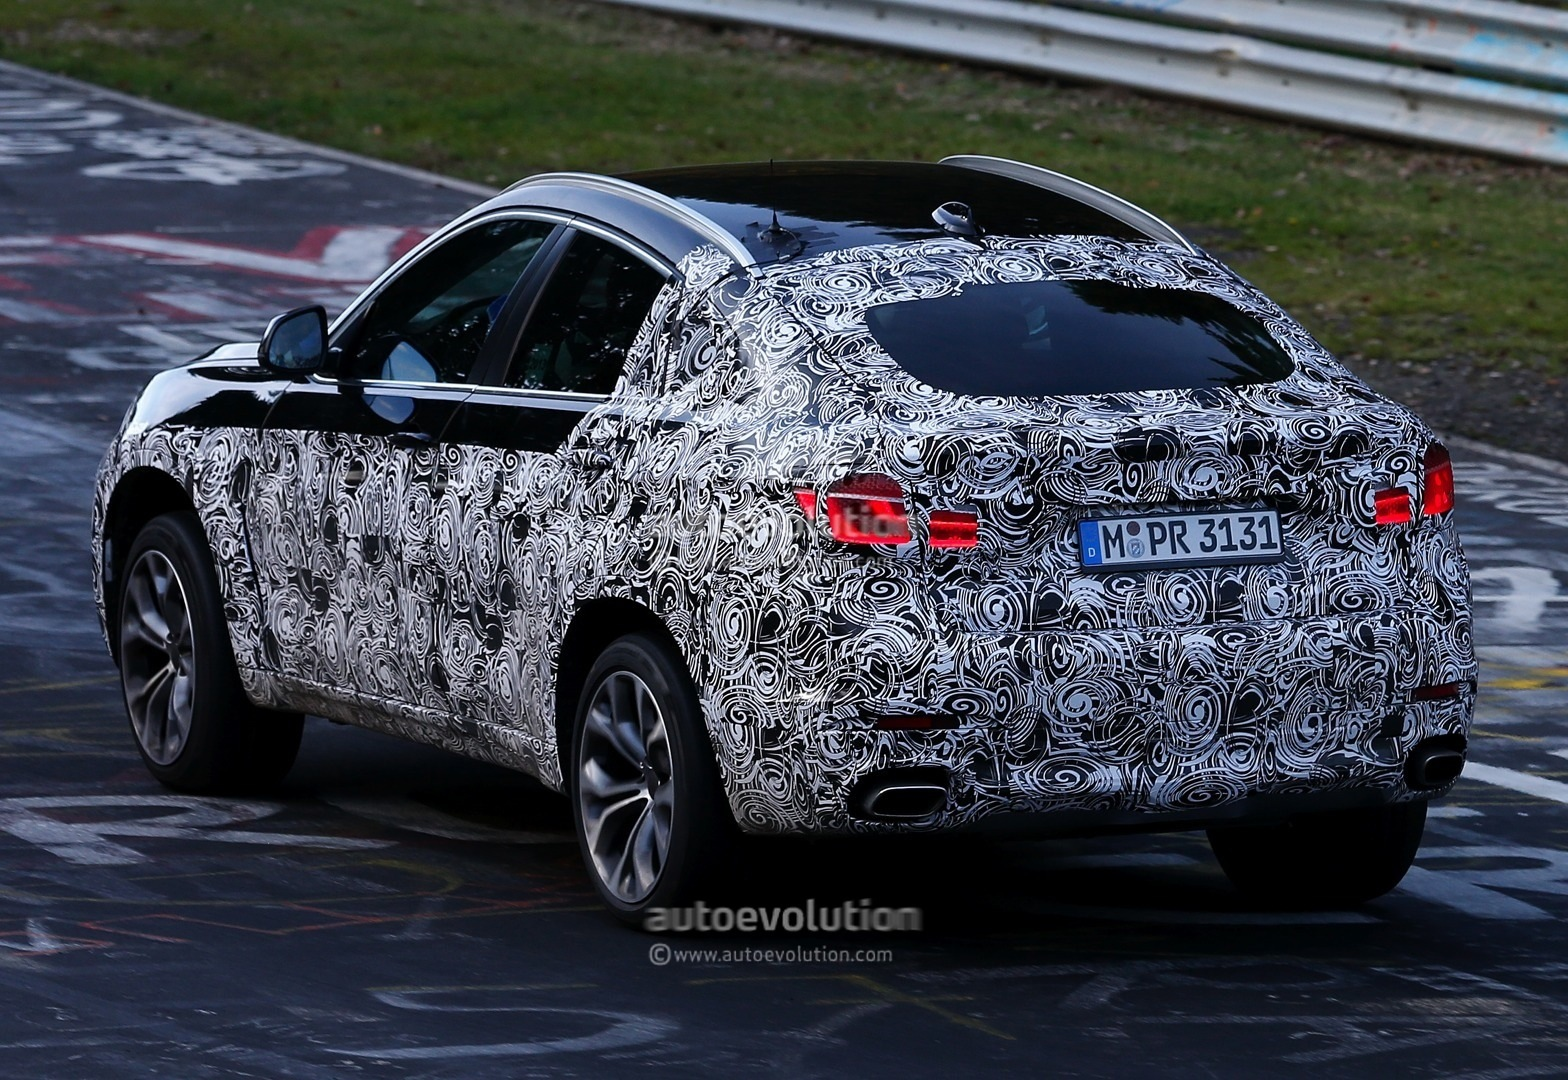 Spyshots: BMW F16 X6 Testing on the Nurburgring - autoevolution